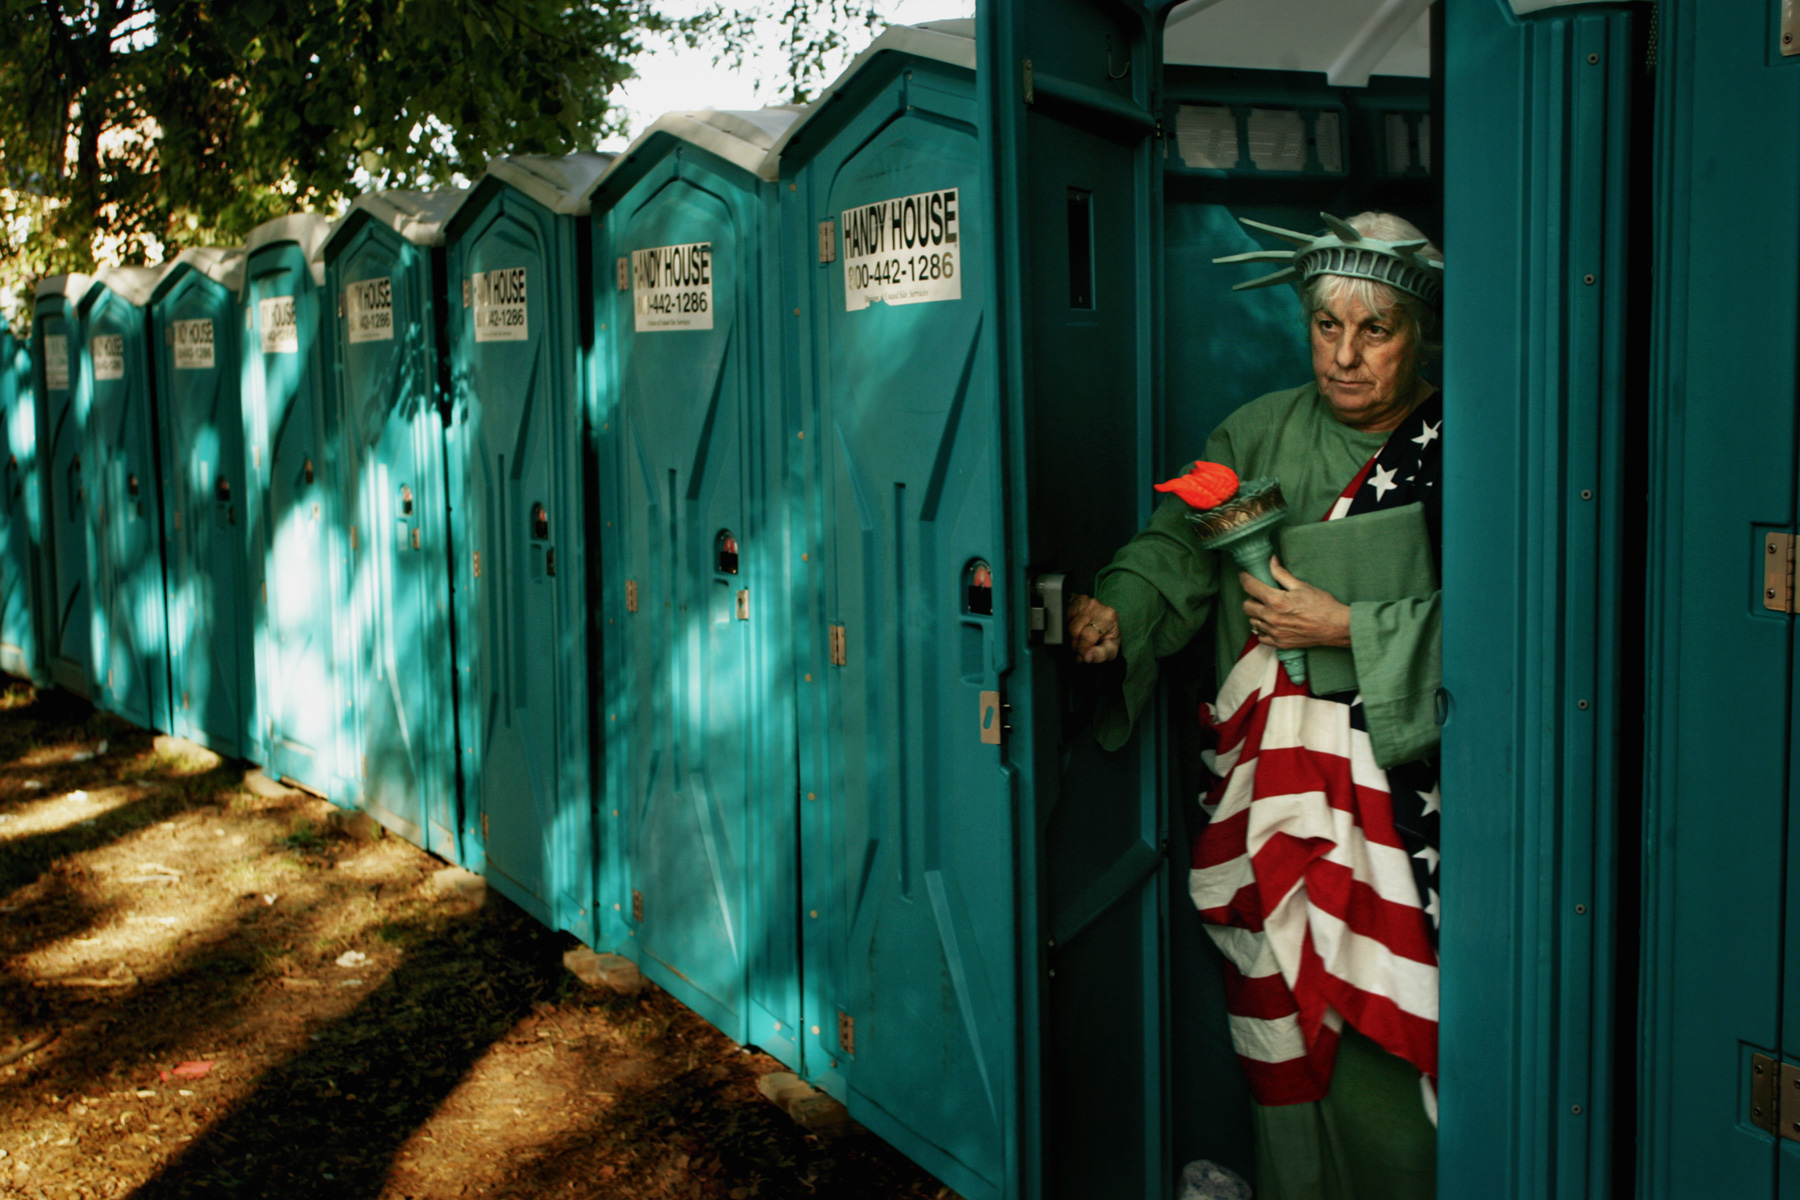 7/4/05 -- Boston -- Carol Hunt (cq) (dressed as lady liberty), of Milton leaves a Handy House before the Boston Pops Concert at the Hatch Shell in Boston.  {quote}Hey, everybody's got to go.  Even us,{quote} Hunt said referring to a few of her friends dressed in costume for the concert.  Photo by Erik Jacobs/Glove Photo